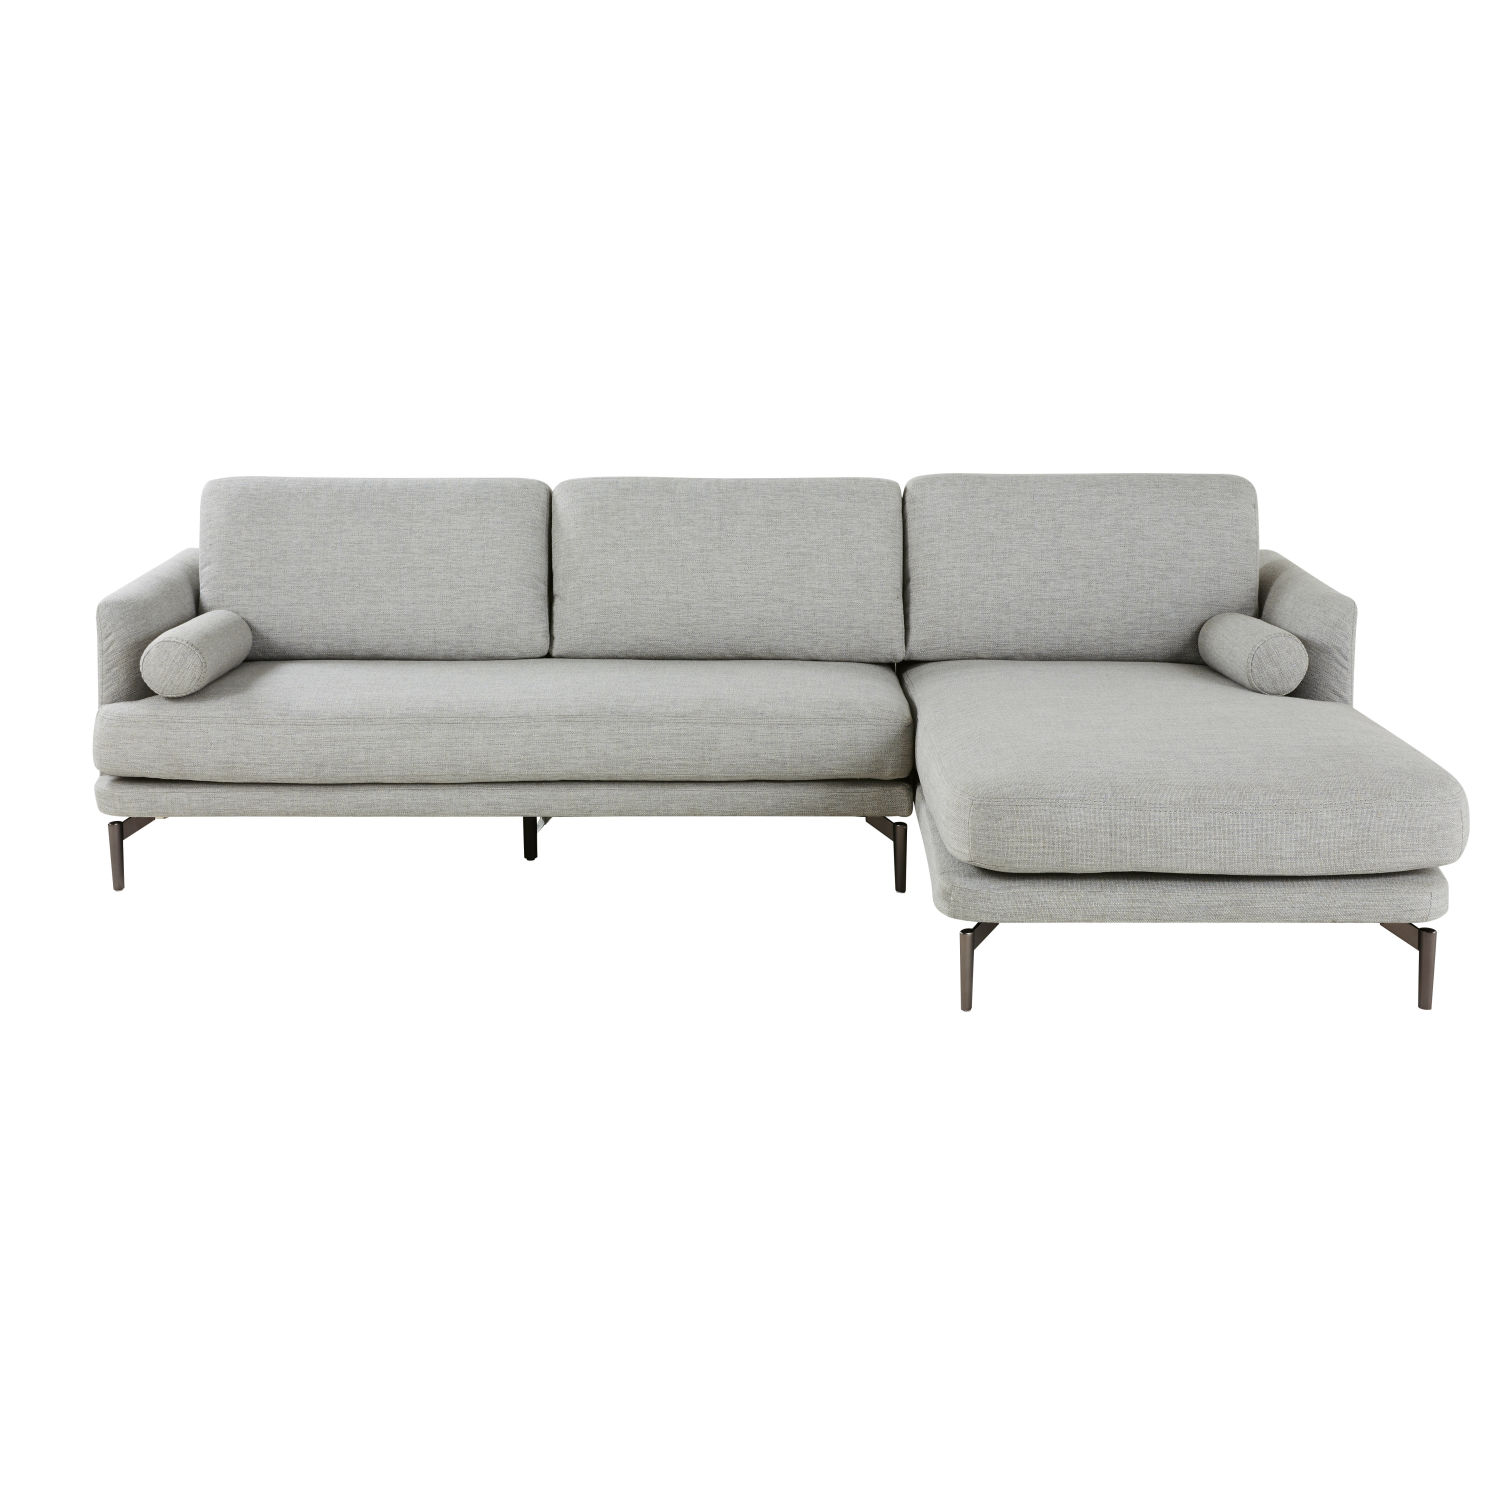 Maison Du Monde Schlafsofa Light Grey 5 Seater Right Hand Corner Sofa Maisons Du Monde